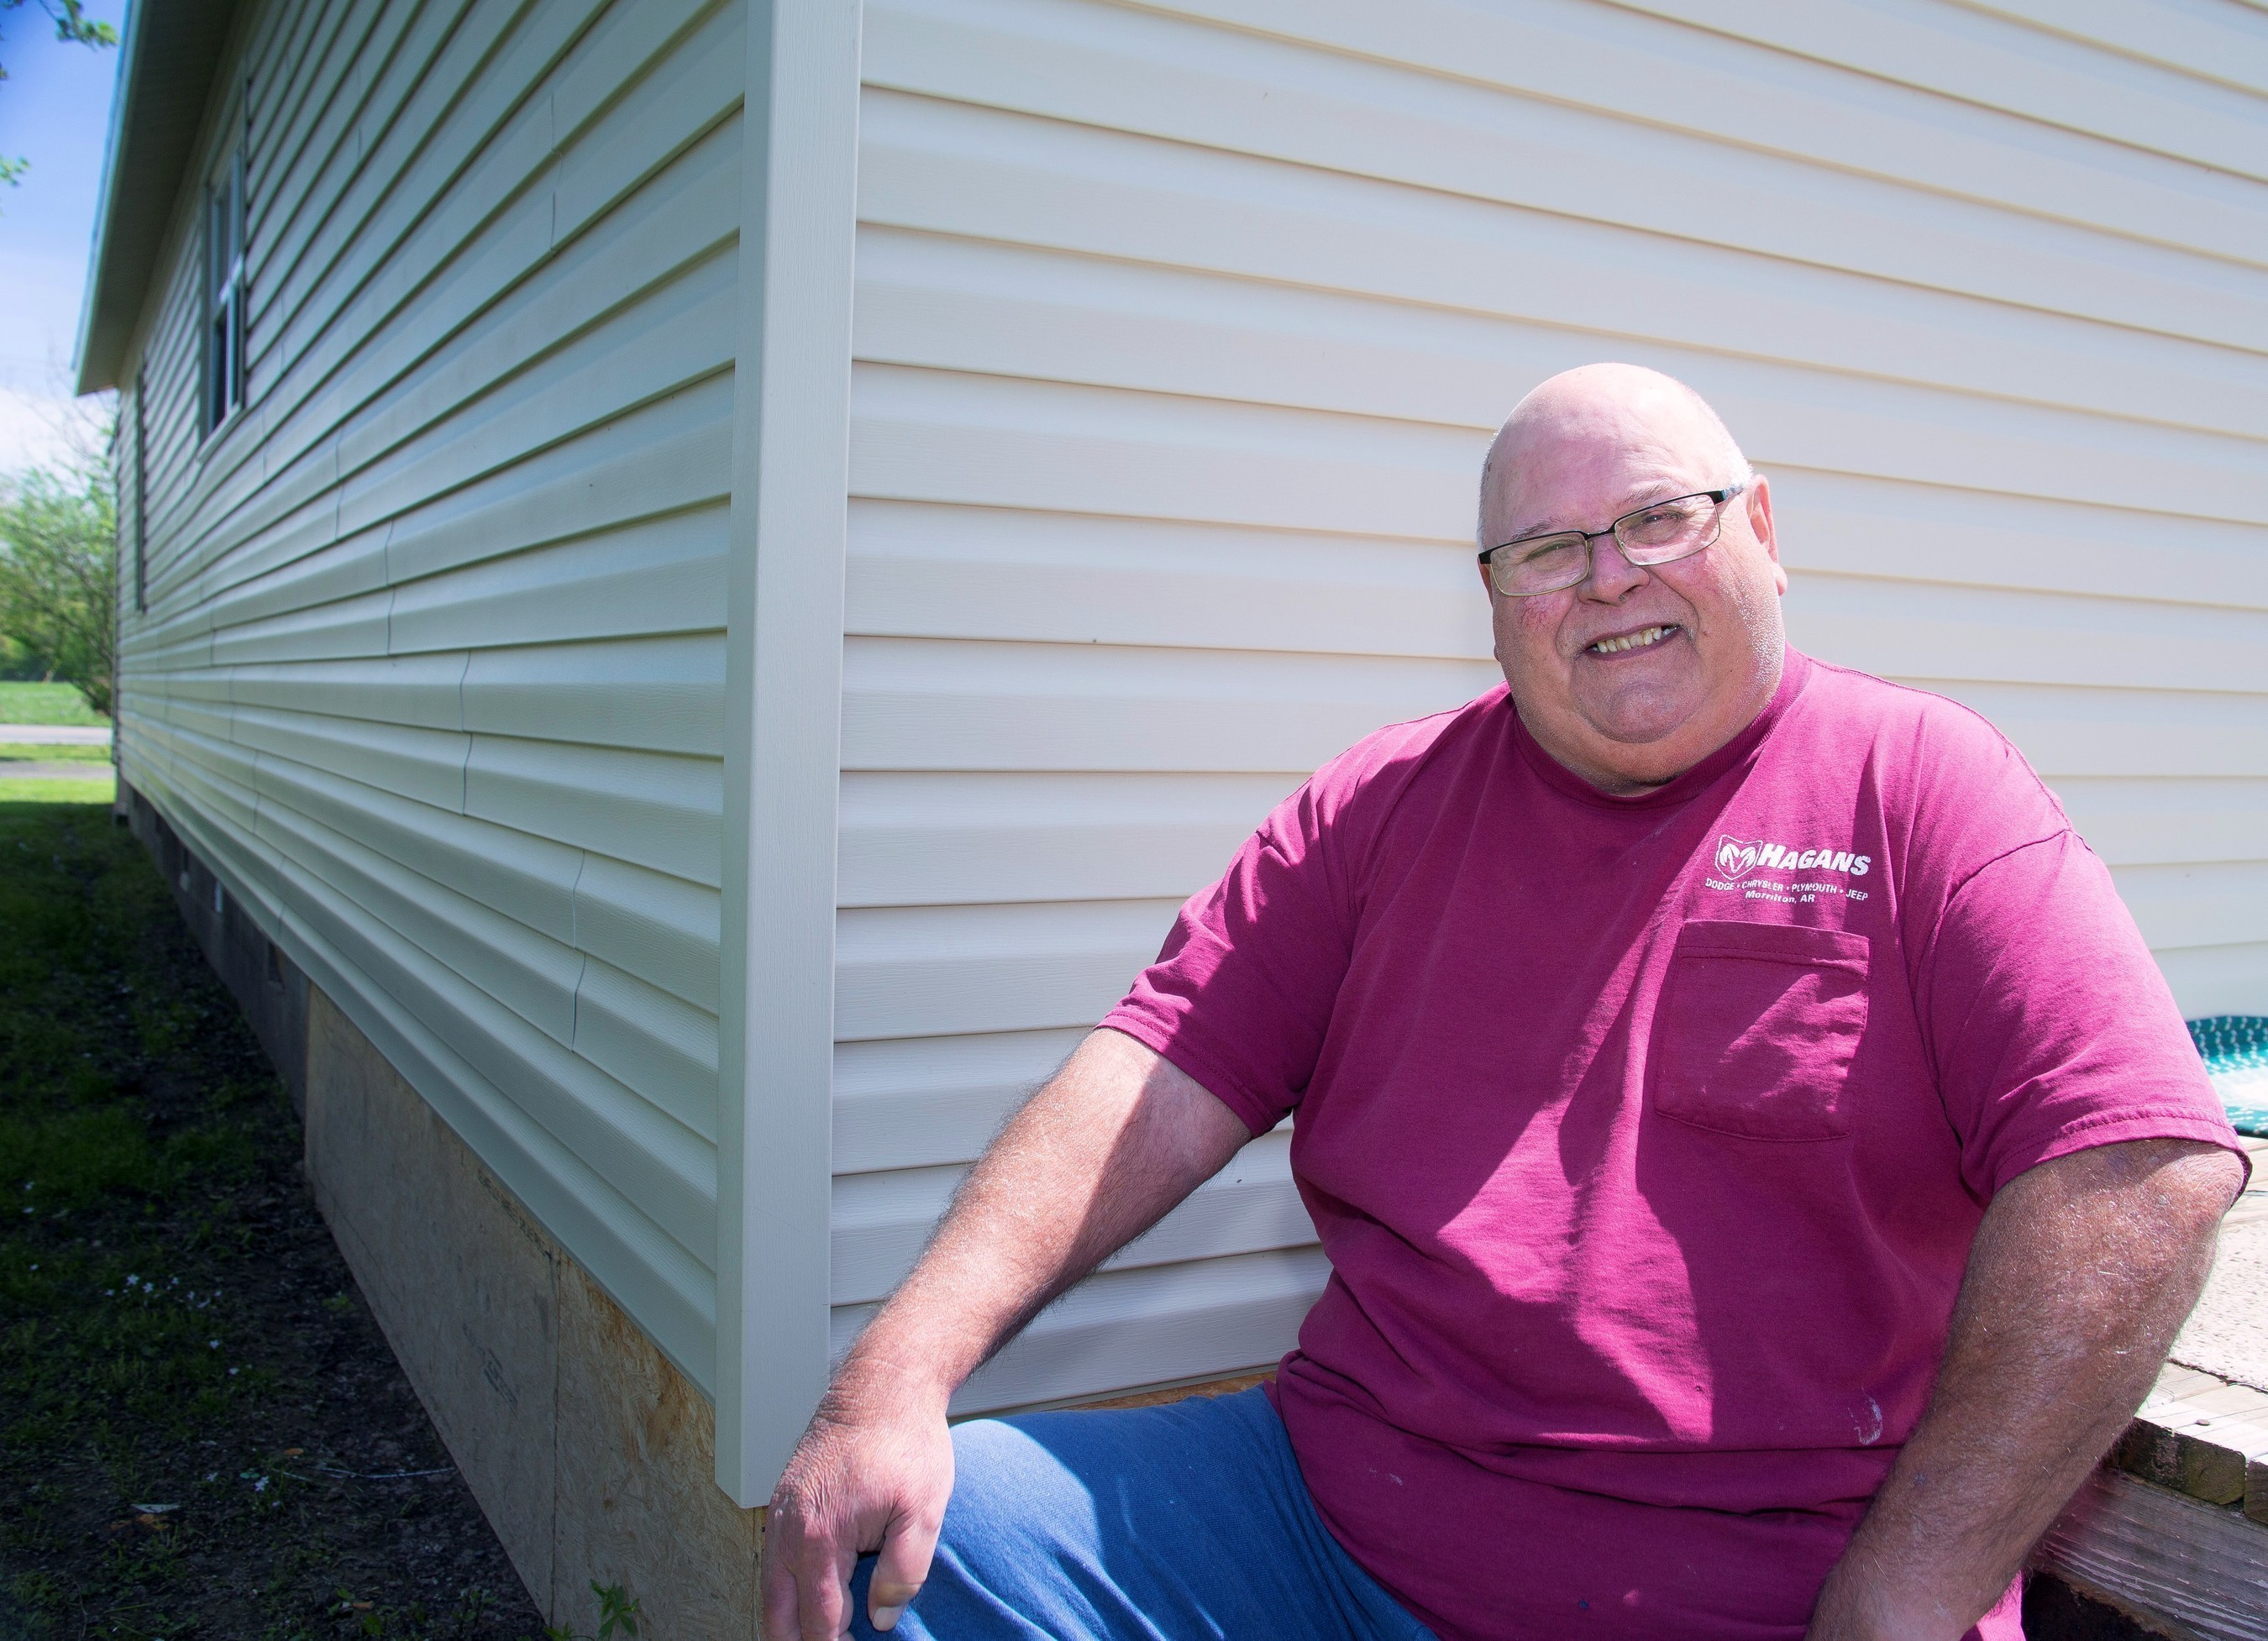 SNAP Grant Helps Former Truck Driver Fix His Home for the Long Haul